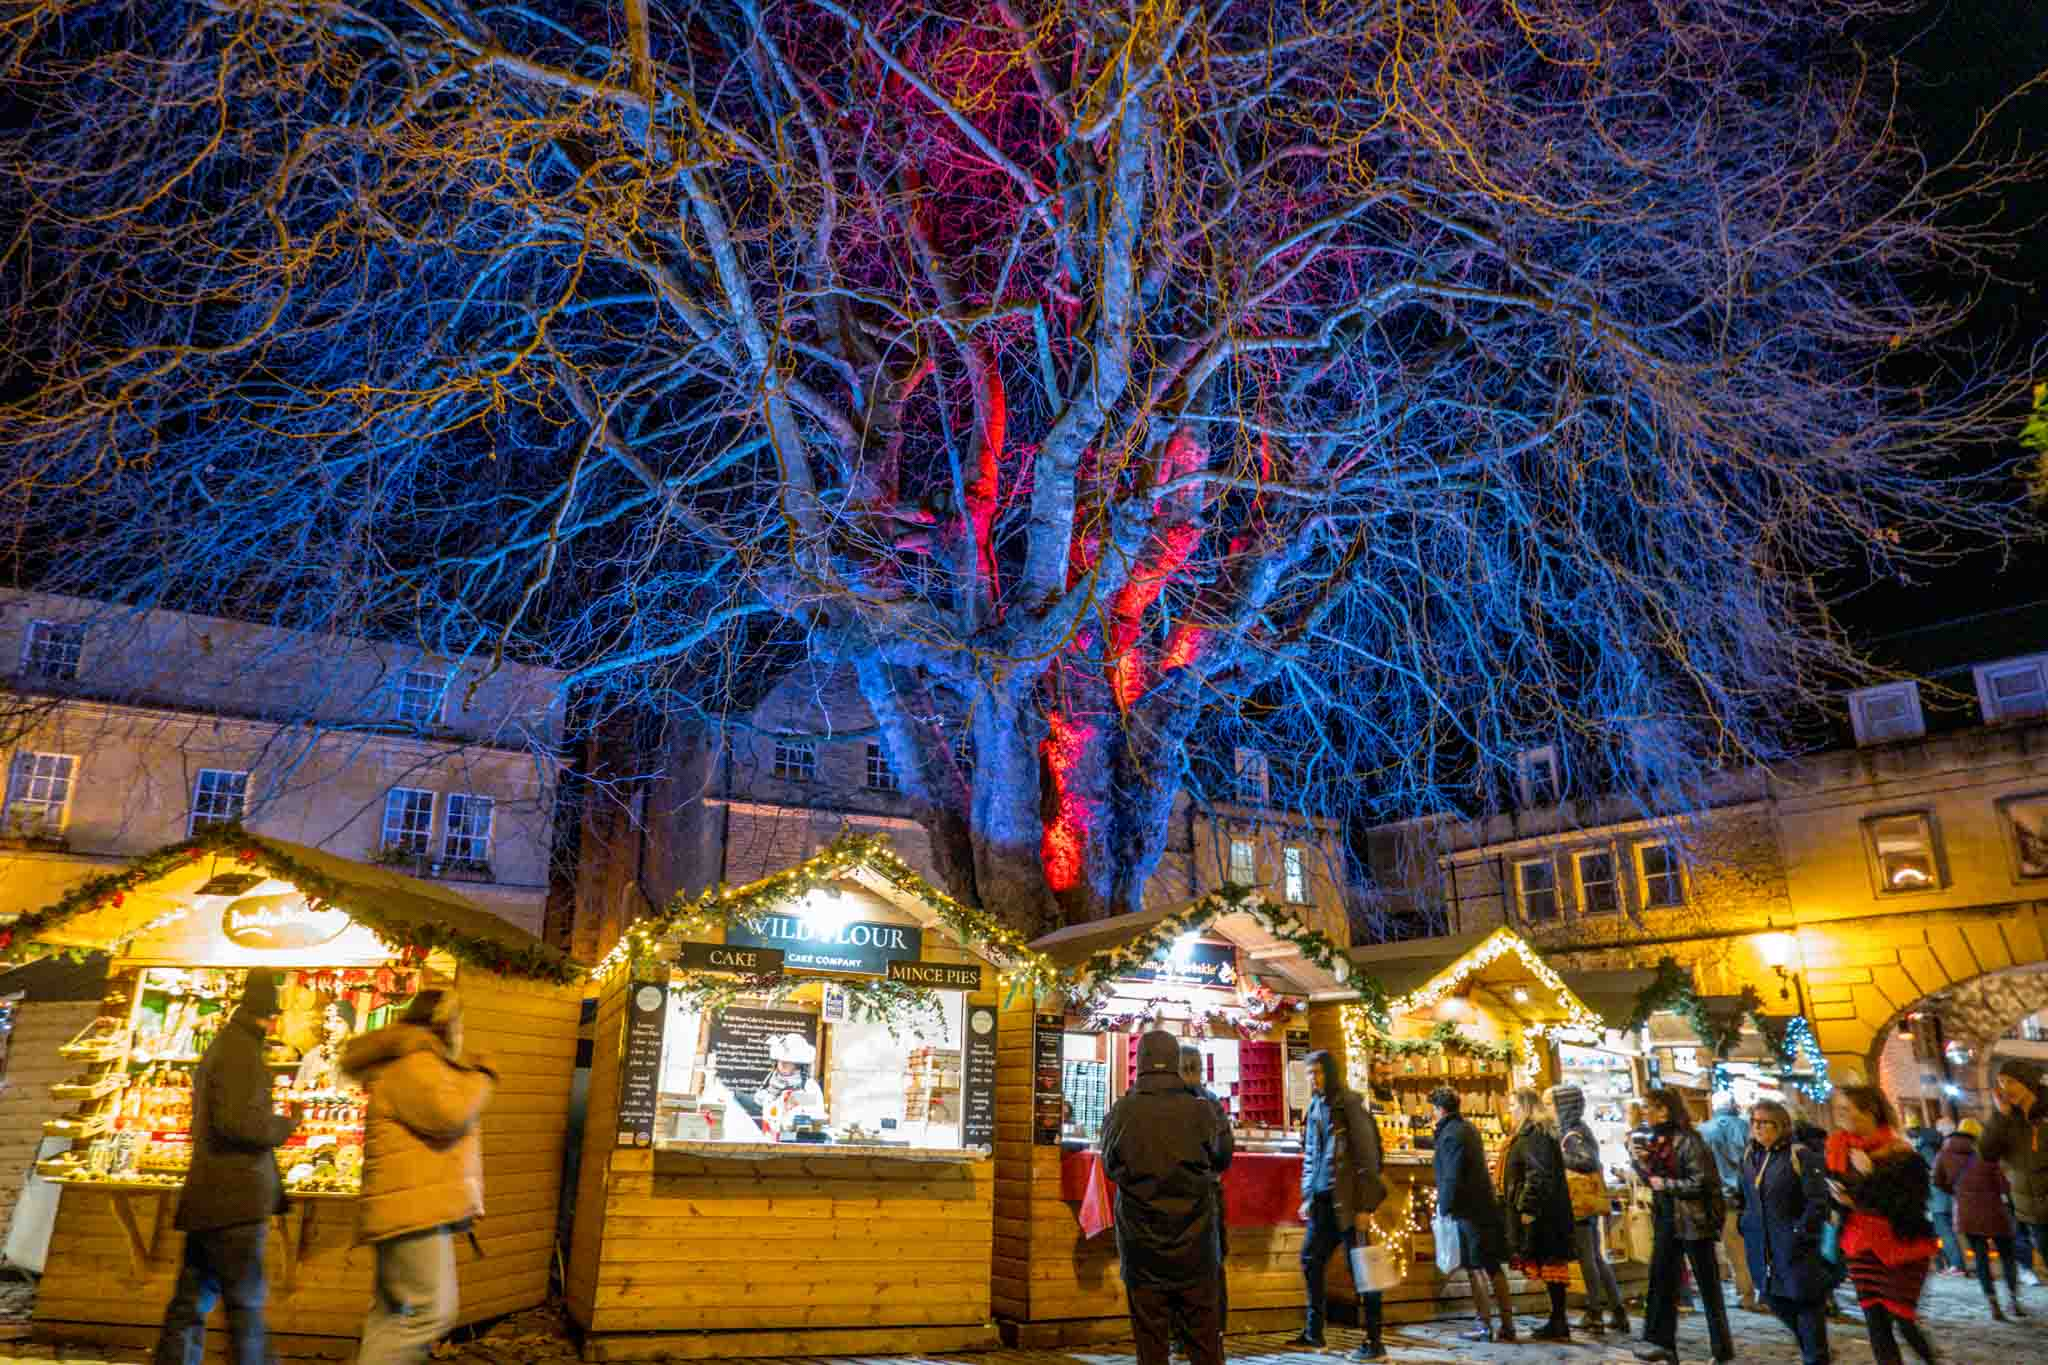 Vendor stalls at night in front of lit up trees